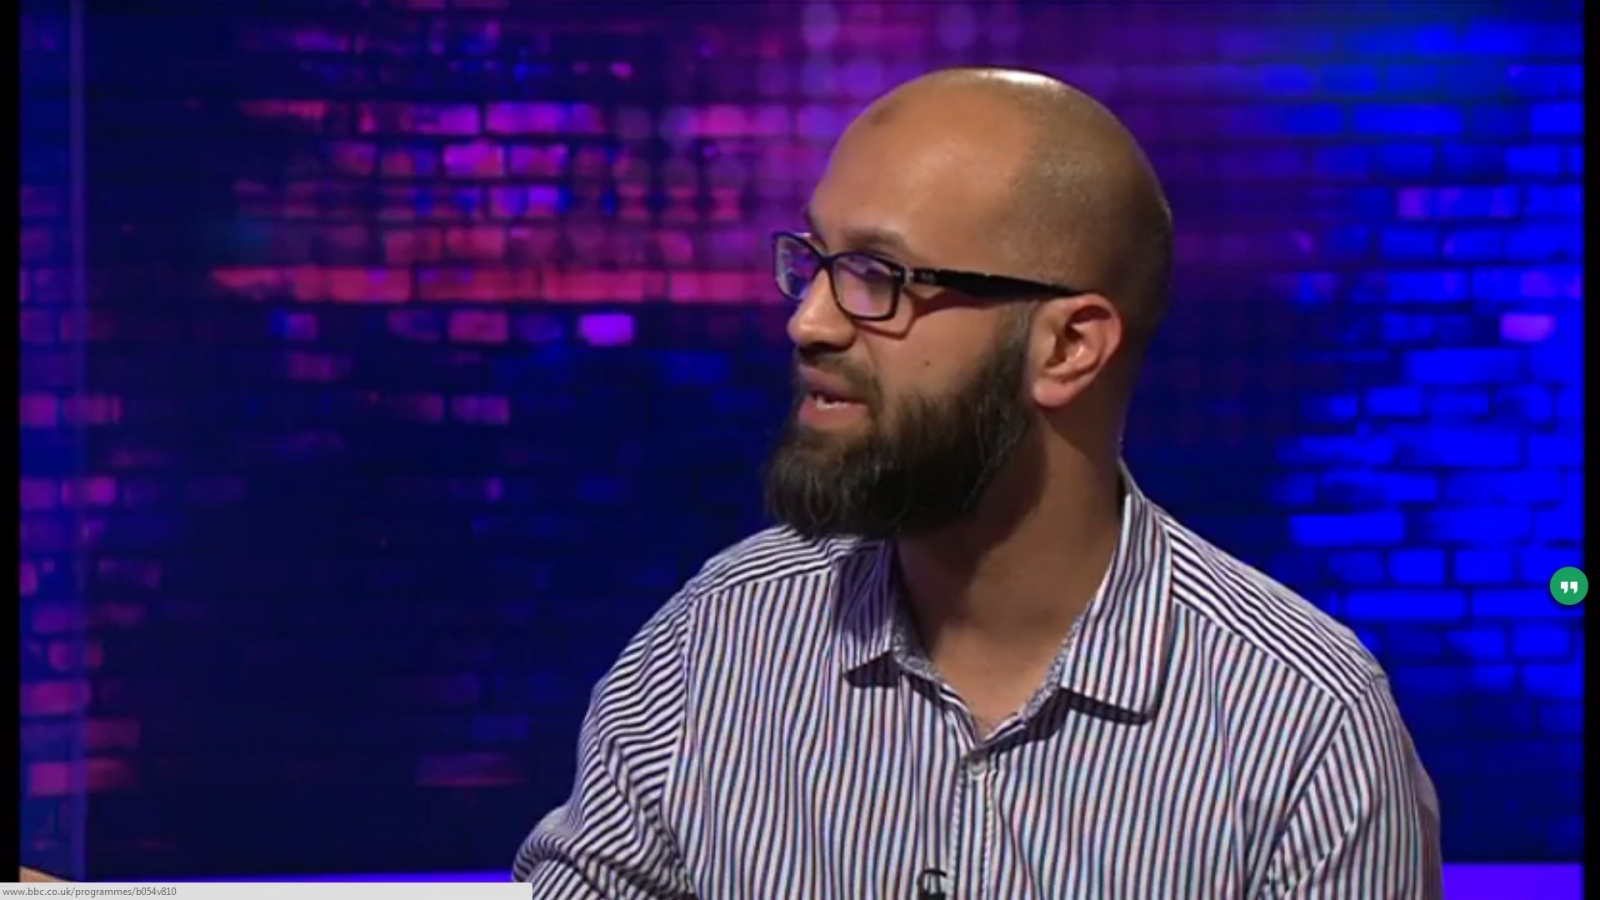 Asim Qureshi on the This Week programme